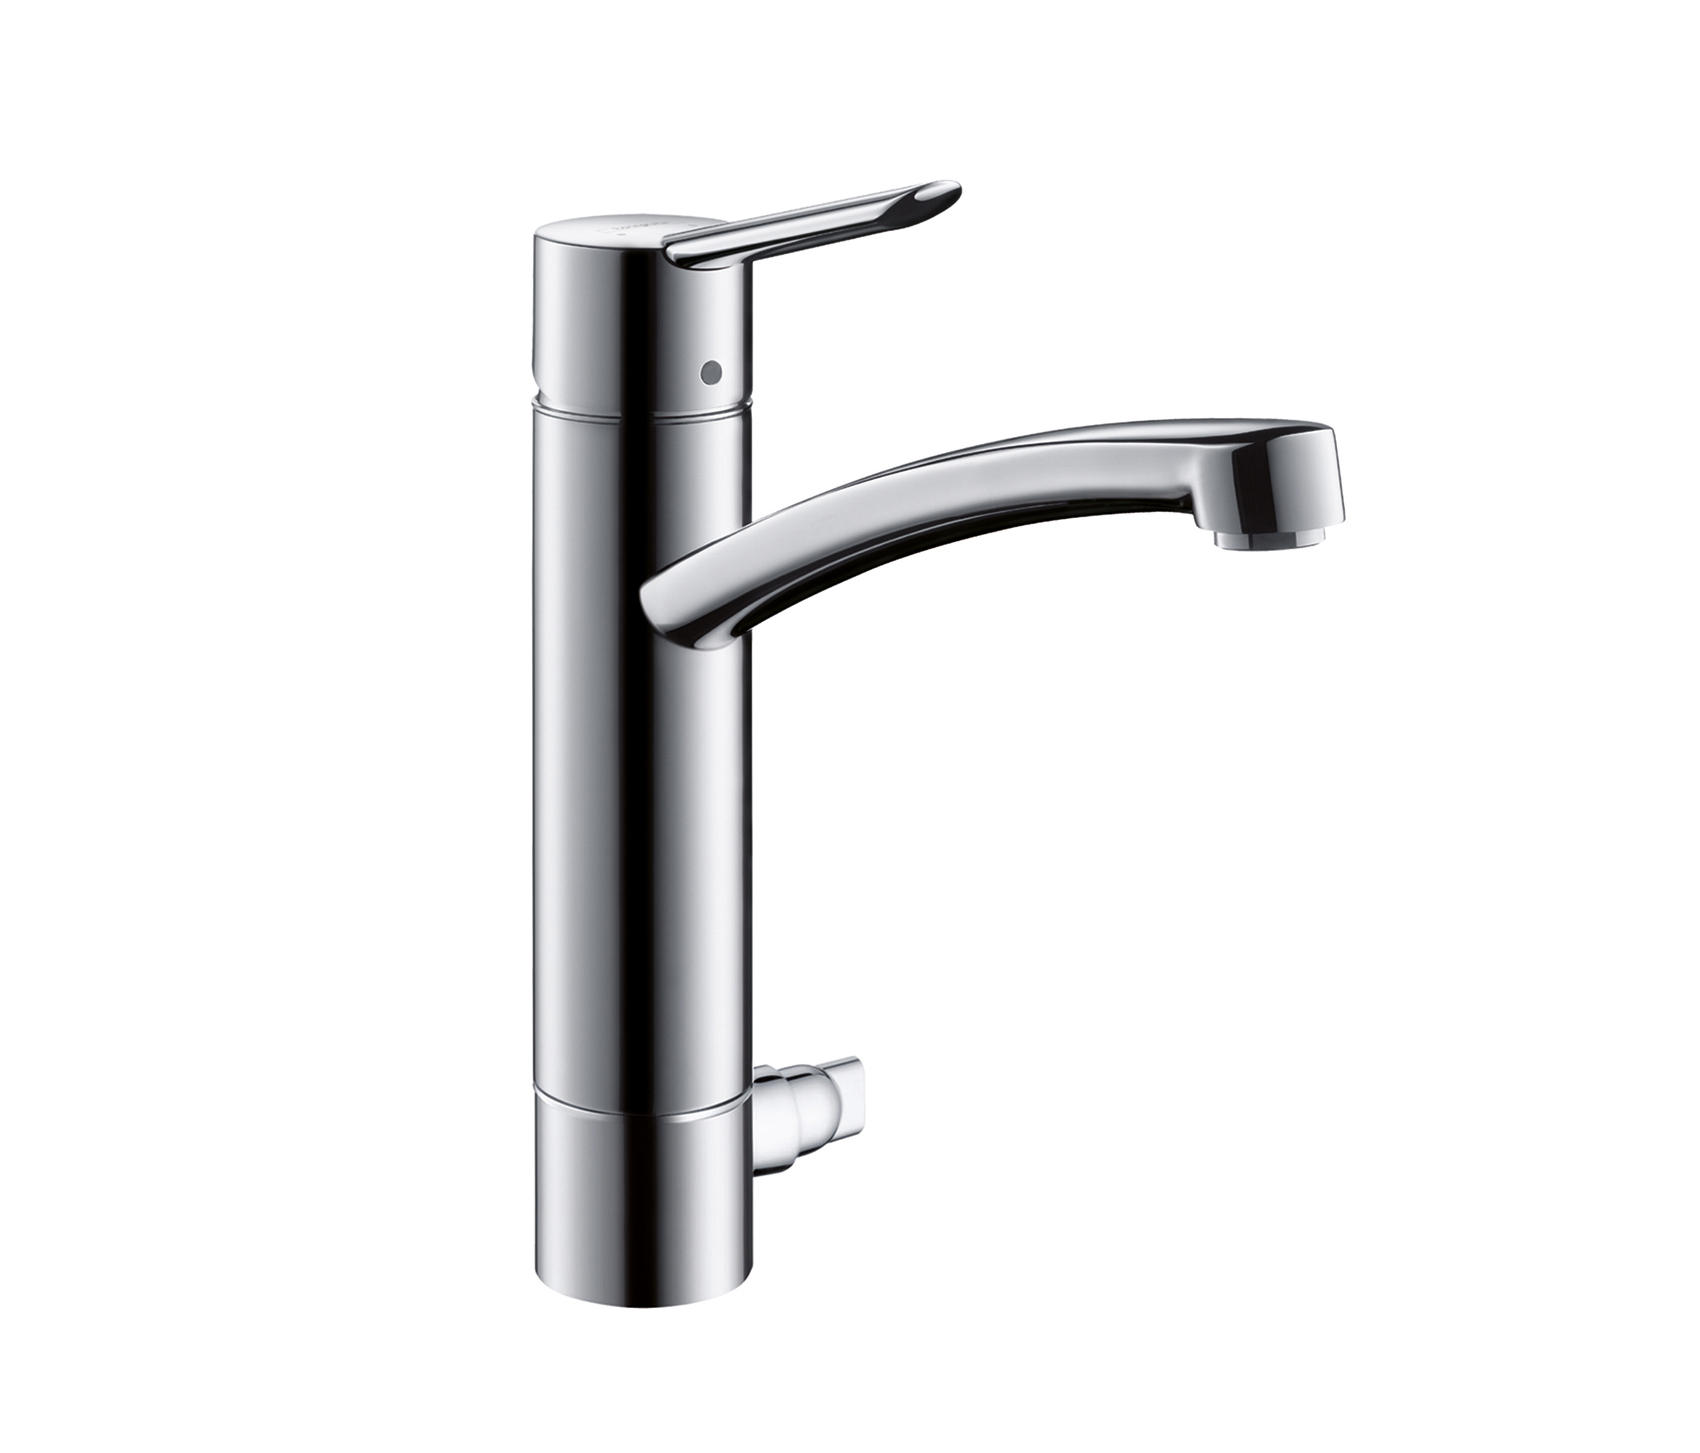 hansgrohe focus s single lever kitchen mixer dn15 with device shut off valve wash basin taps. Black Bedroom Furniture Sets. Home Design Ideas